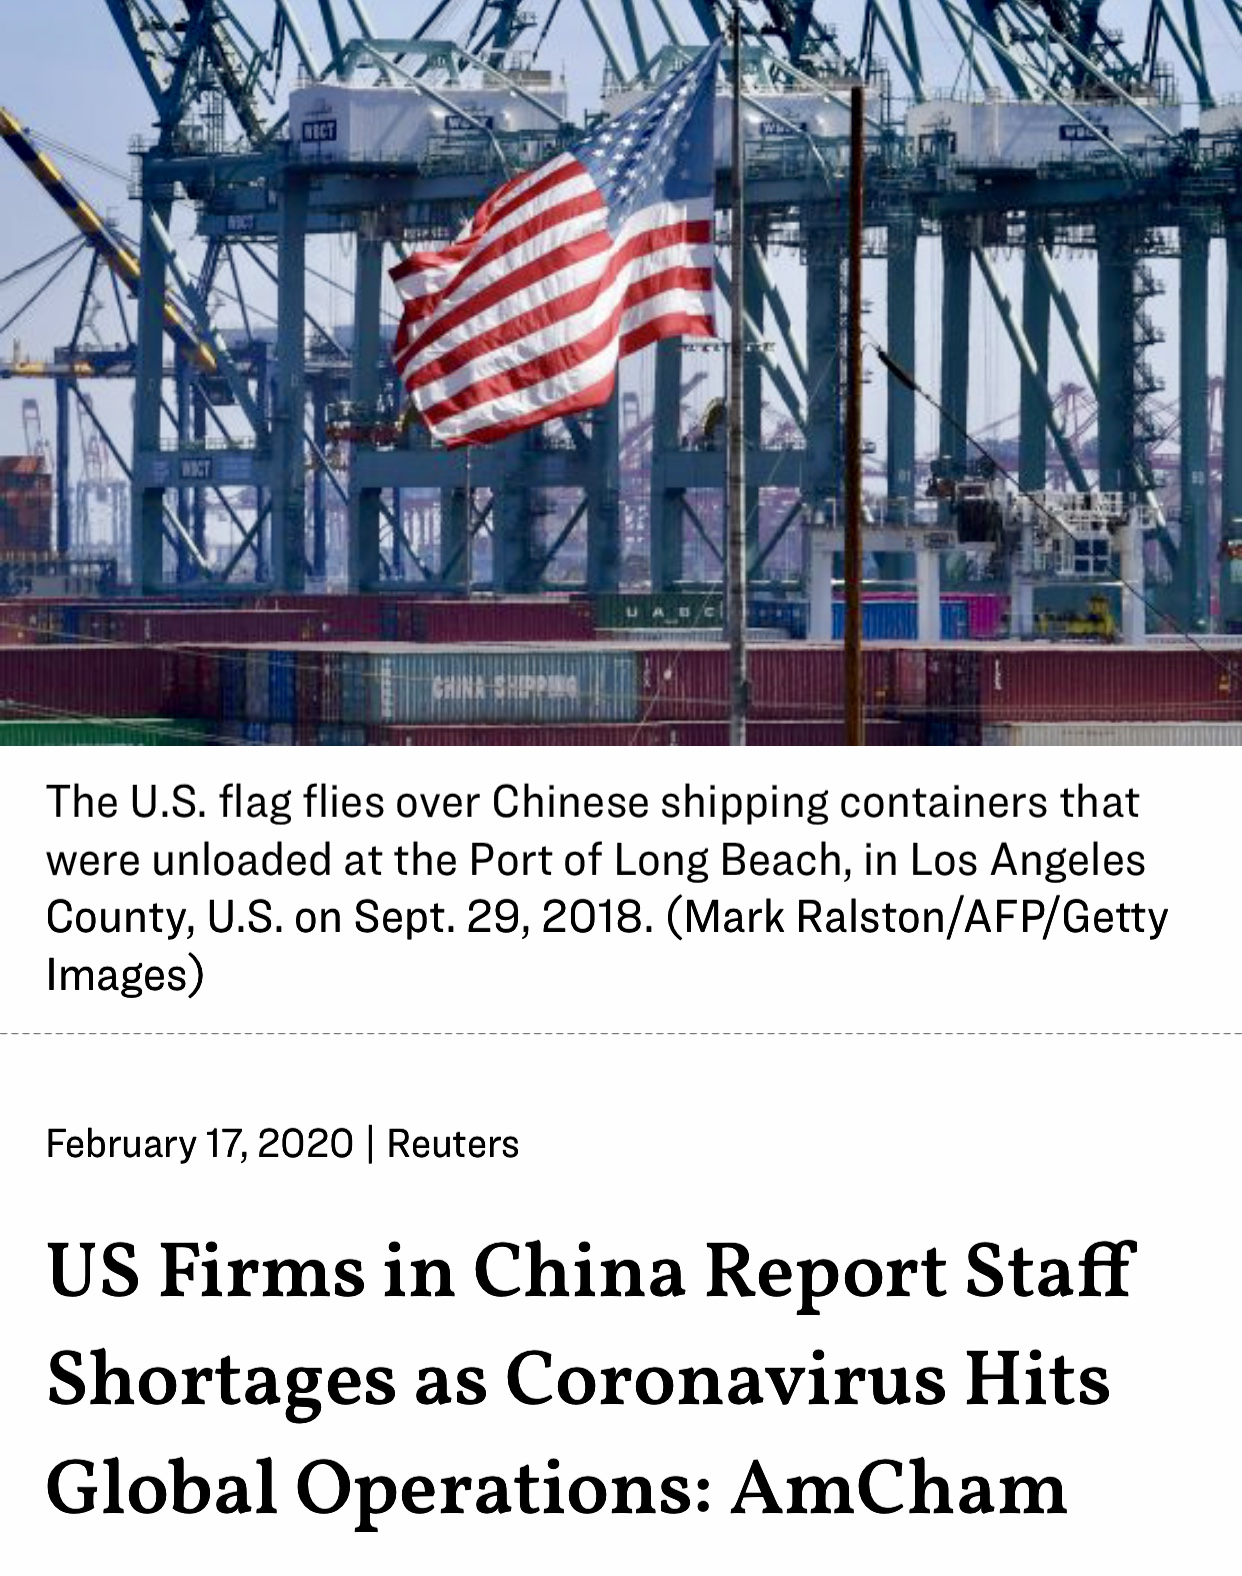 US Companies Accelerating Plans to Move Their Supply Chains Out of China